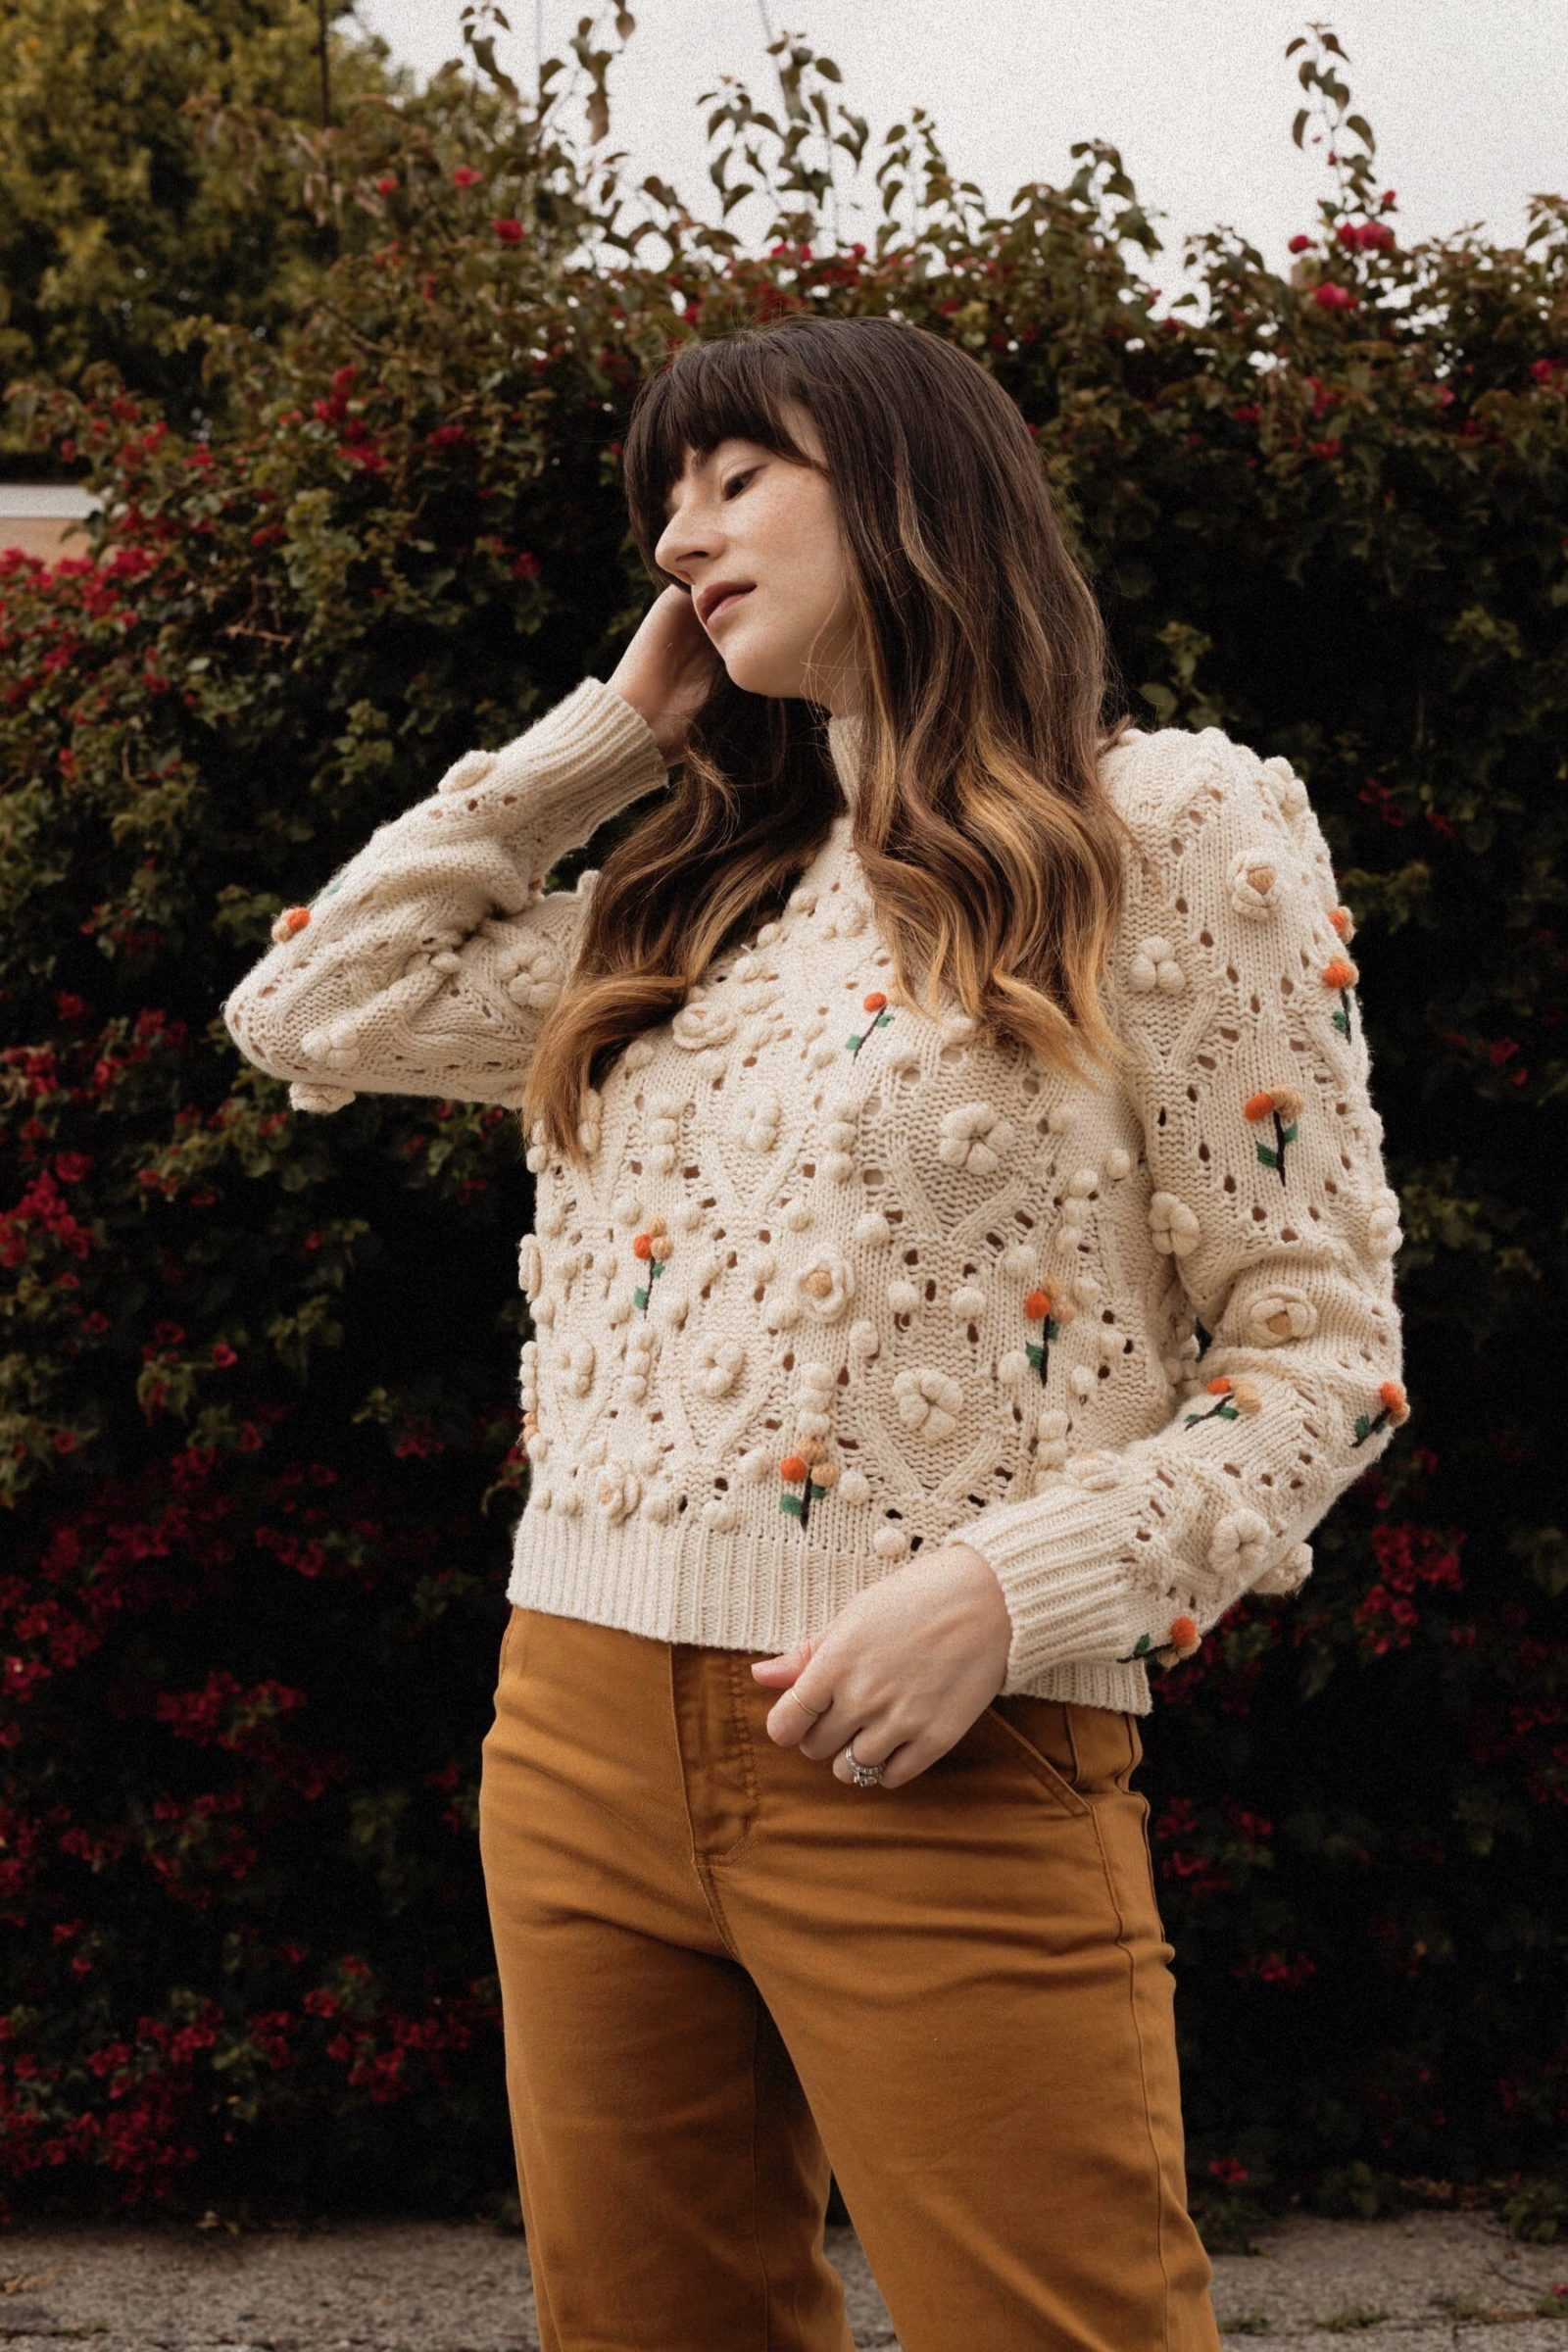 Zara Knit Sweater with Floral Applique